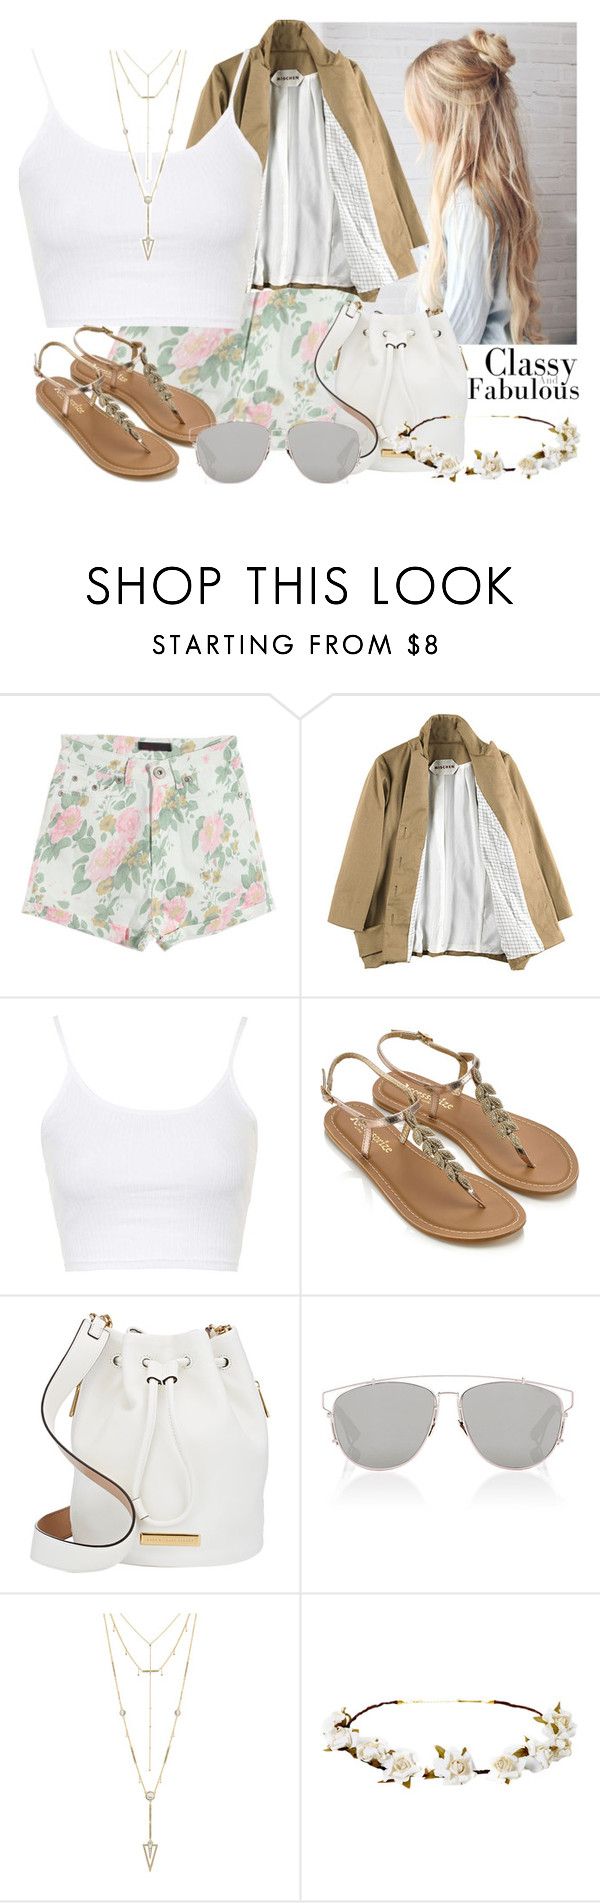 """#106 Spring Summer Floral"" by beautybluebear ❤ liked on Polyvore featuring Mischen, Topshop, Accessorize, Marc by Marc Jacobs, Christian Dior, House of Harlow 1960 and Cult Gaia"